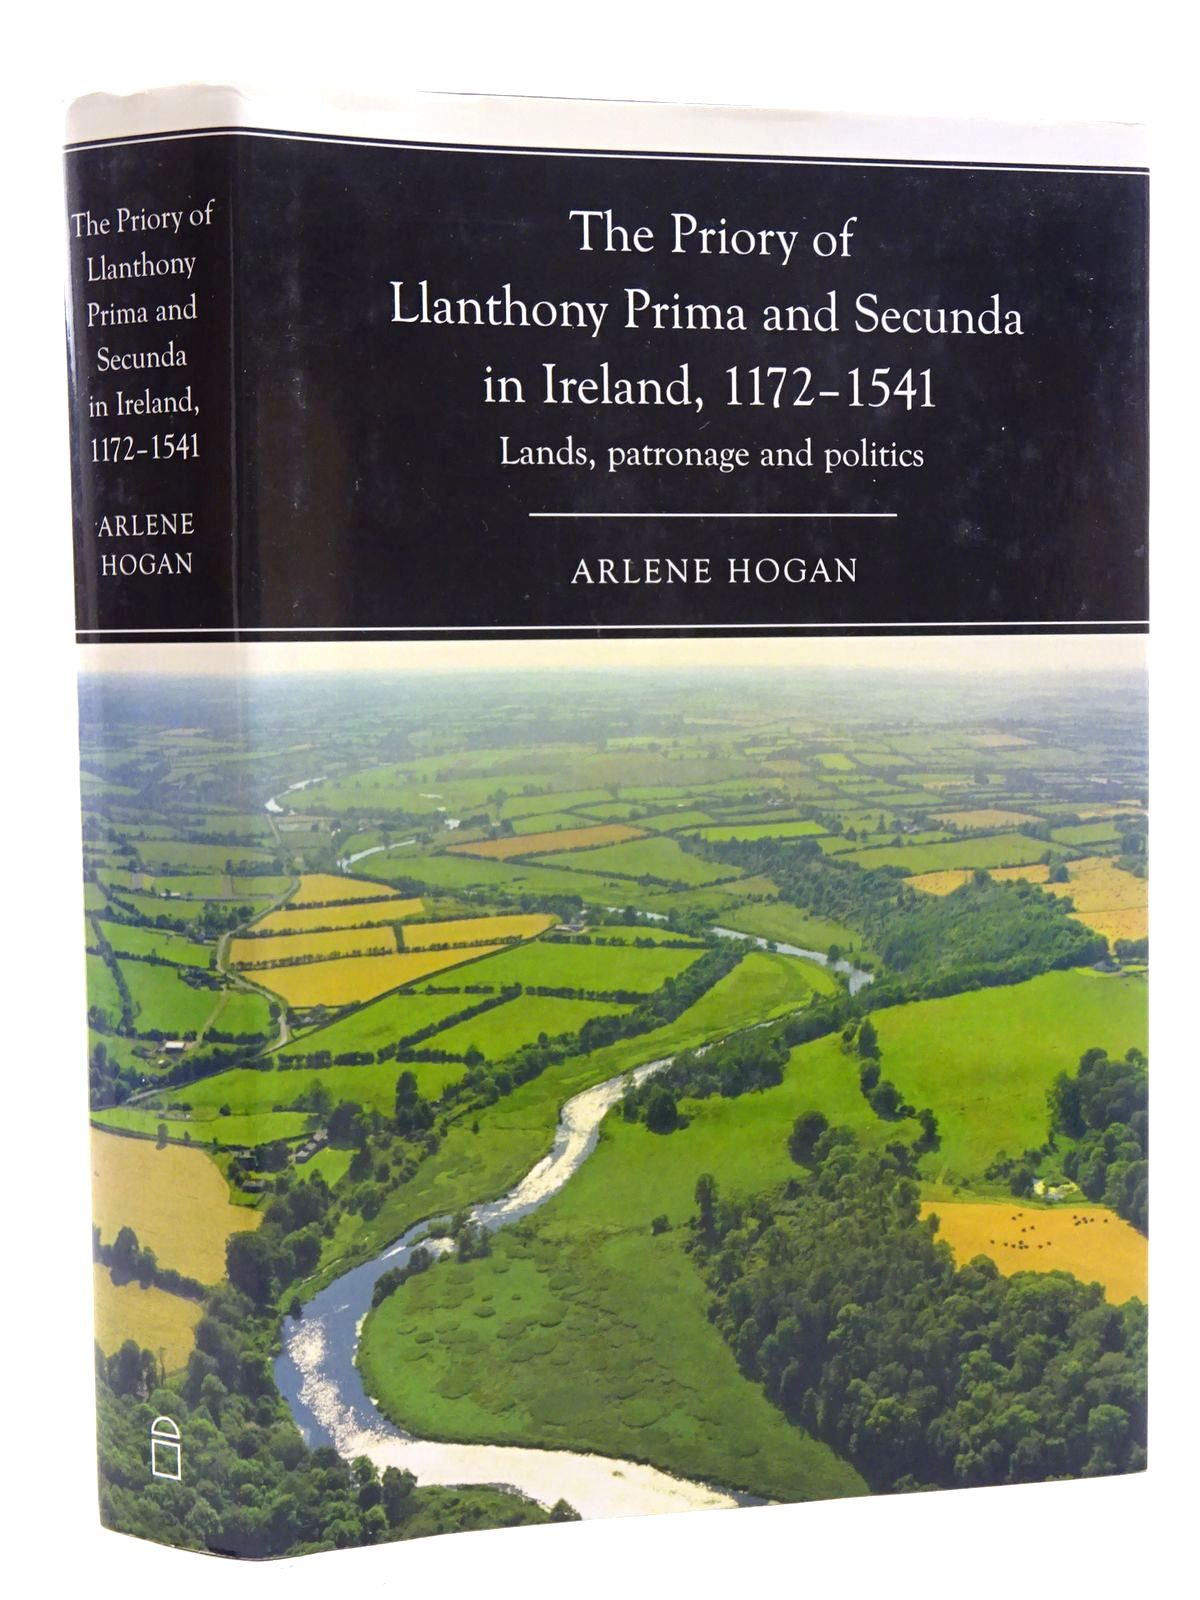 Photo of THE PRIORY OF LLANTHONY PRIMA AND SECUNDA IN IRELAND, 1172-1541: LANDS, PATRONAGE AND POLITICS written by Hogan, Arlene published by Four Courts Press (STOCK CODE: 1816171)  for sale by Stella & Rose's Books